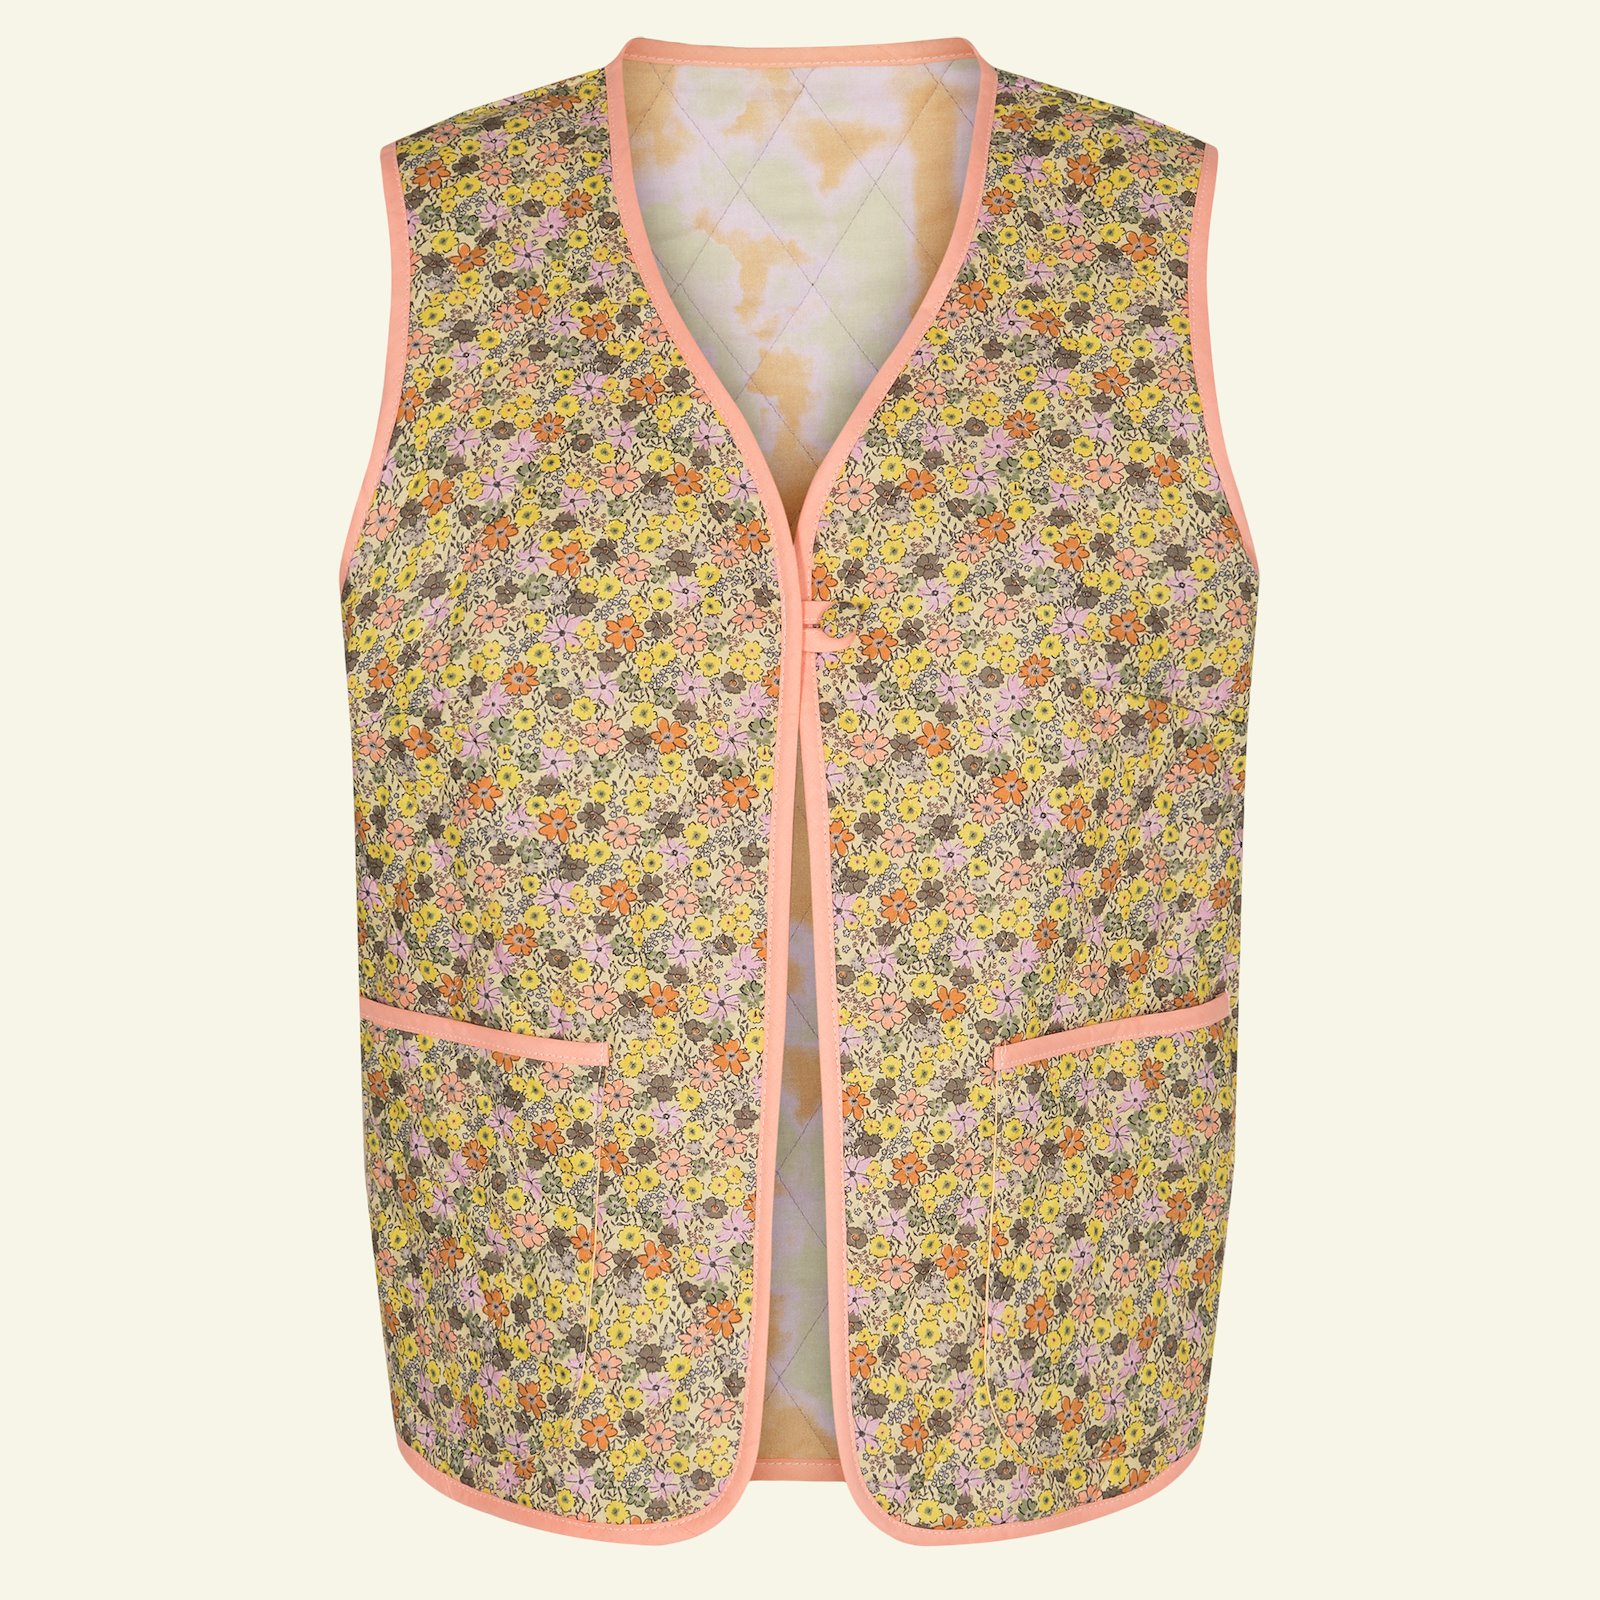 Quilted jacket and waistcoat, 44/16 p24047_920228_4295_66007_43507_sskit